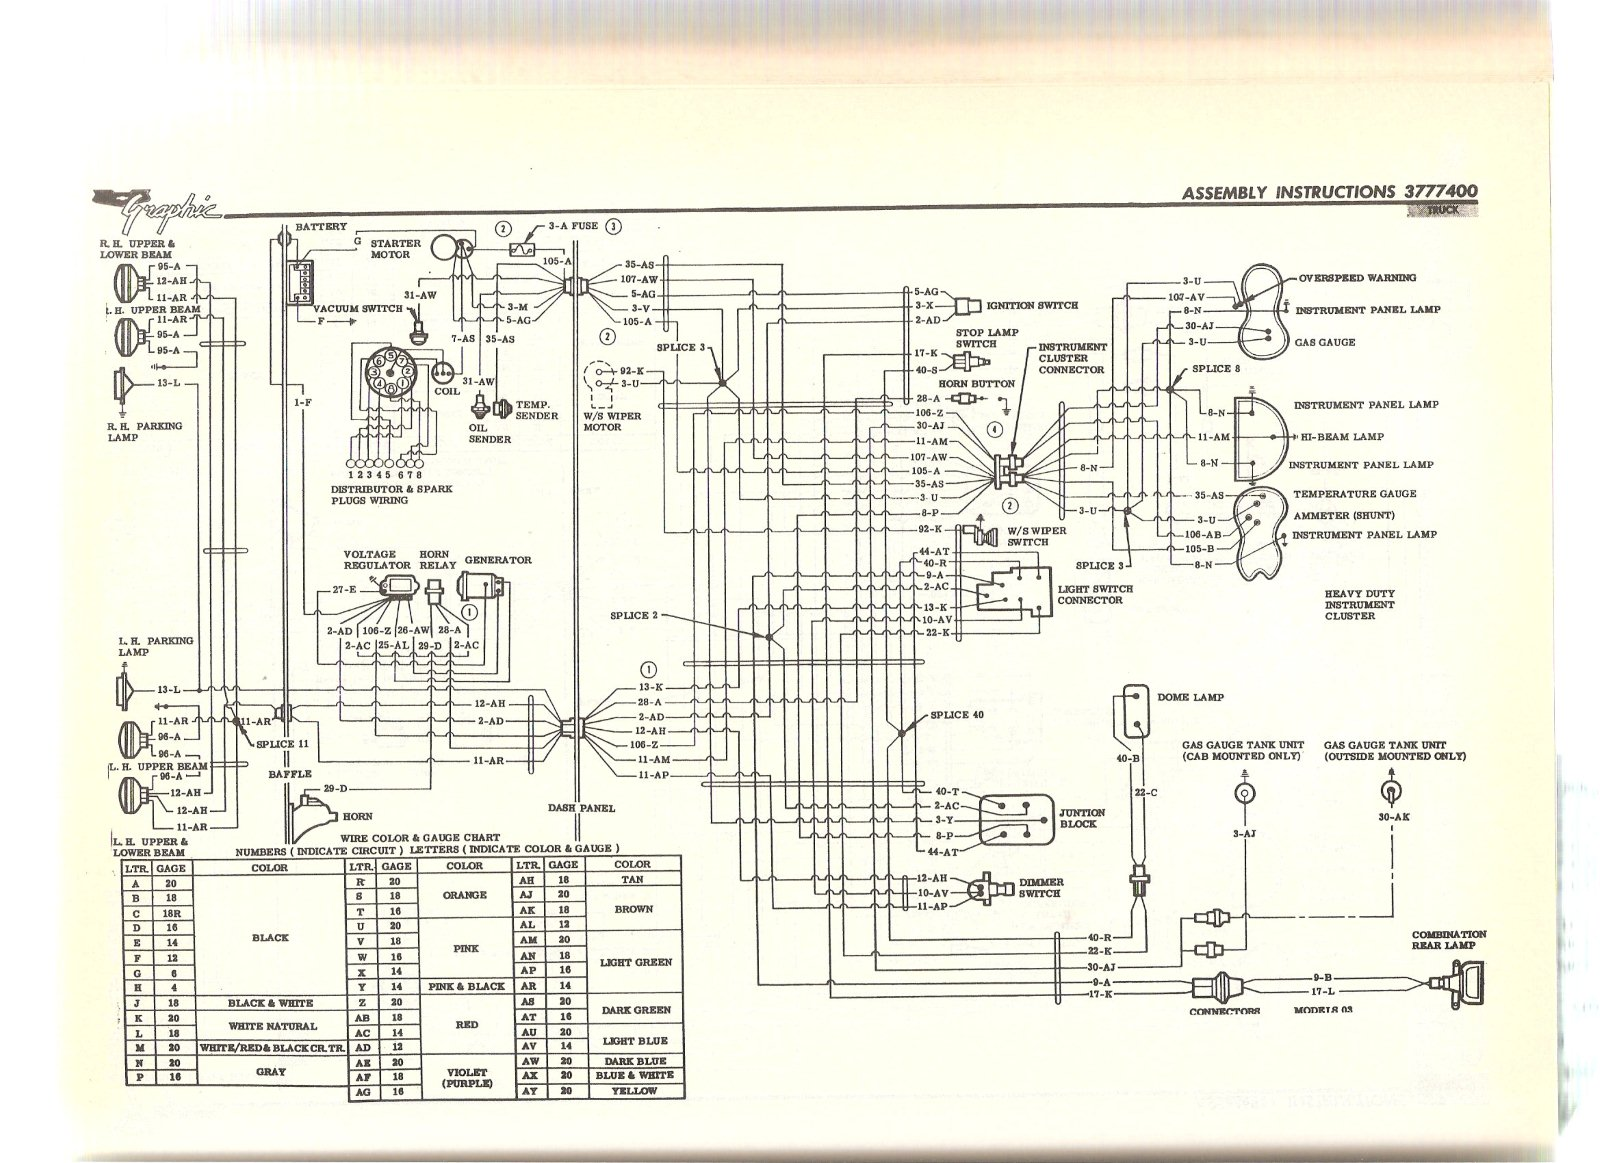 1960 cadillac wiring diagram 1960 wiring diagrams online wiring diagram